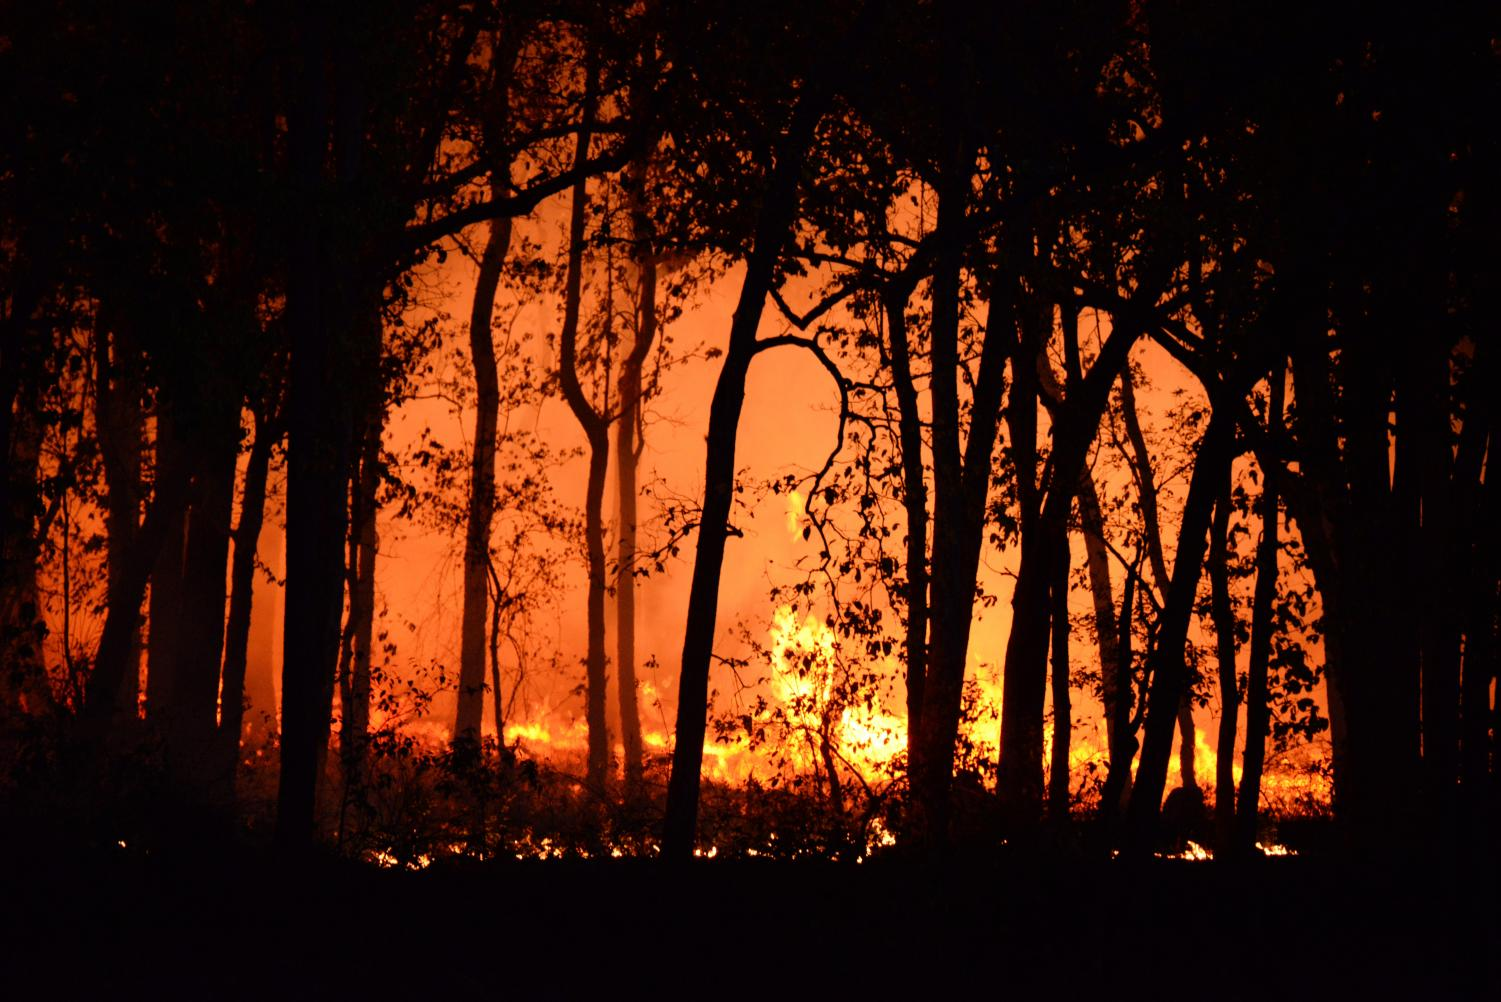 Forest engulfed in flames